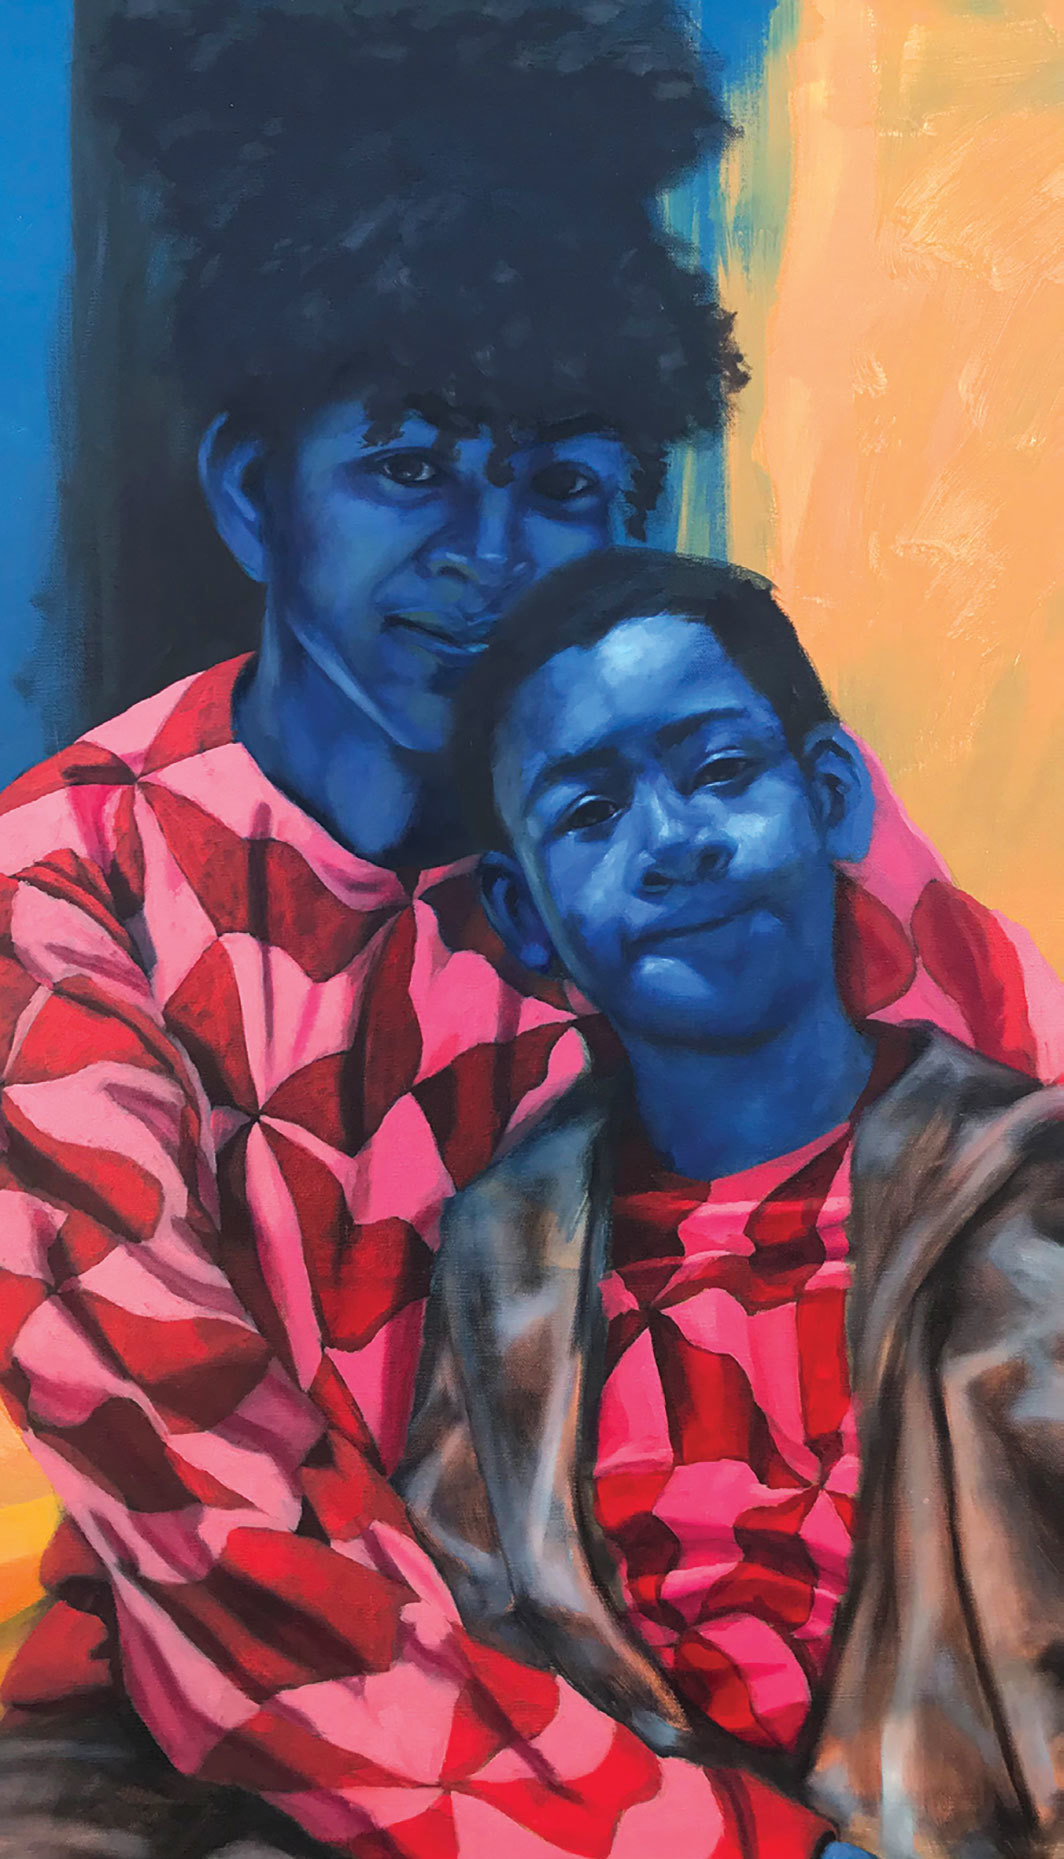 "Spencer Evans, Mother to Son (Keadra and Xavier) (detail), 2018, oil and acrylic on canvas, 36 x 36""."